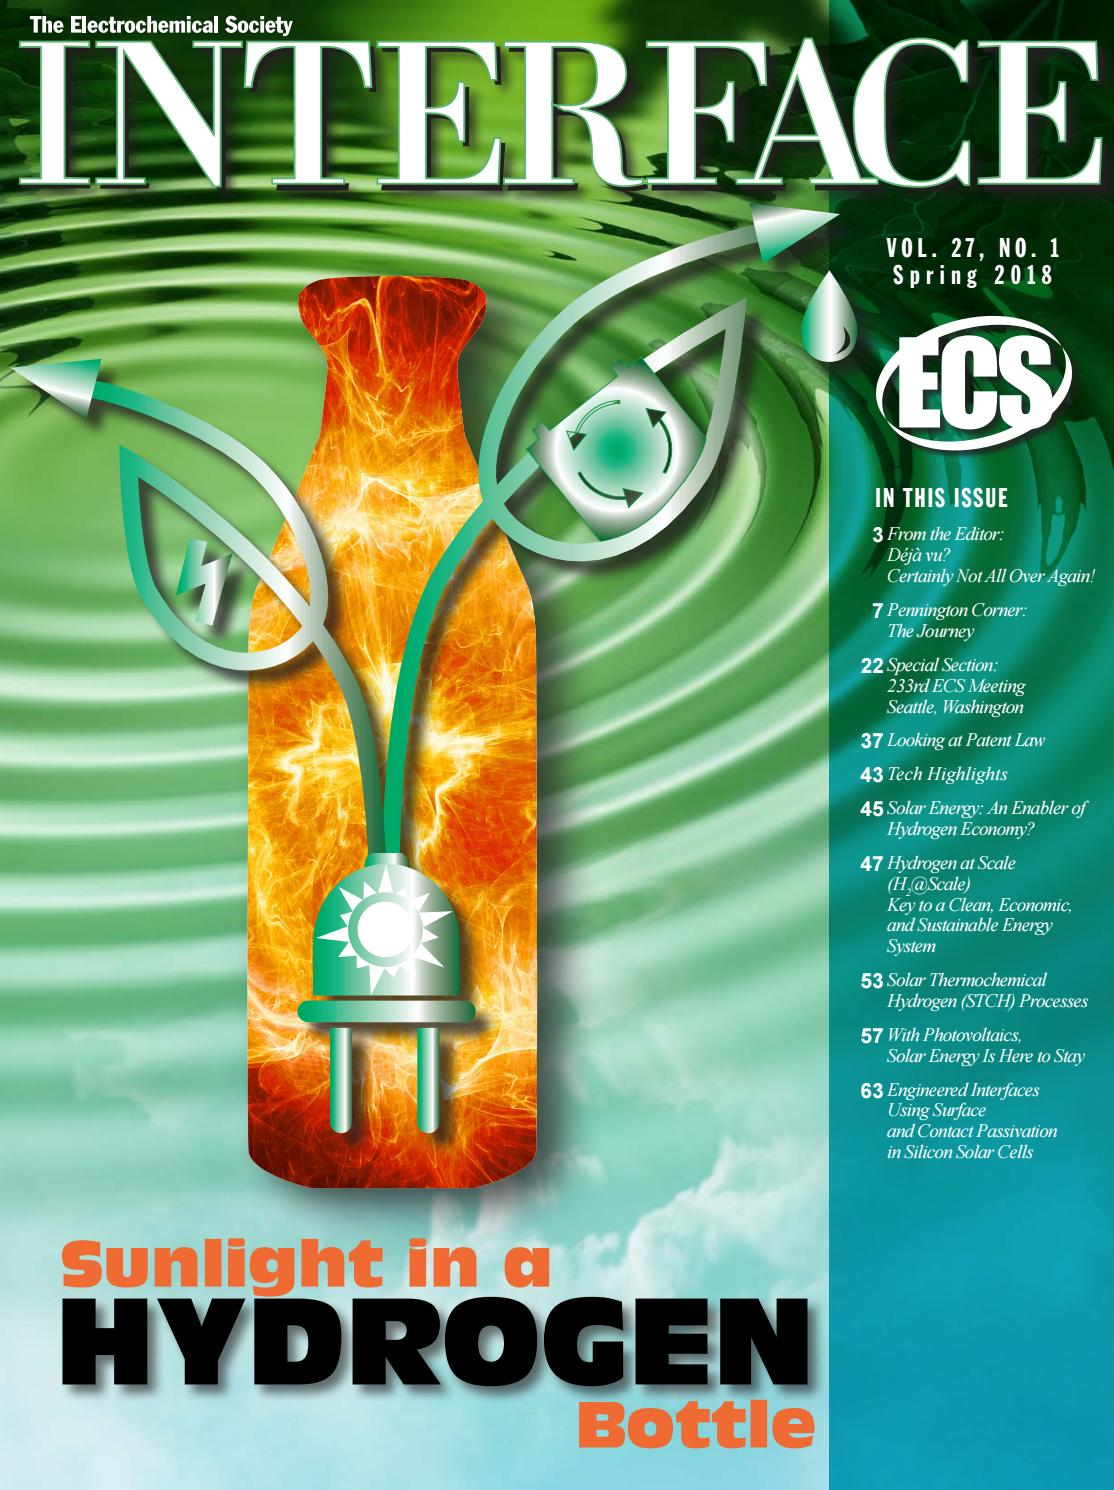 Interface Vol  27, No  1, Spring 2018 by The Electrochemical Society